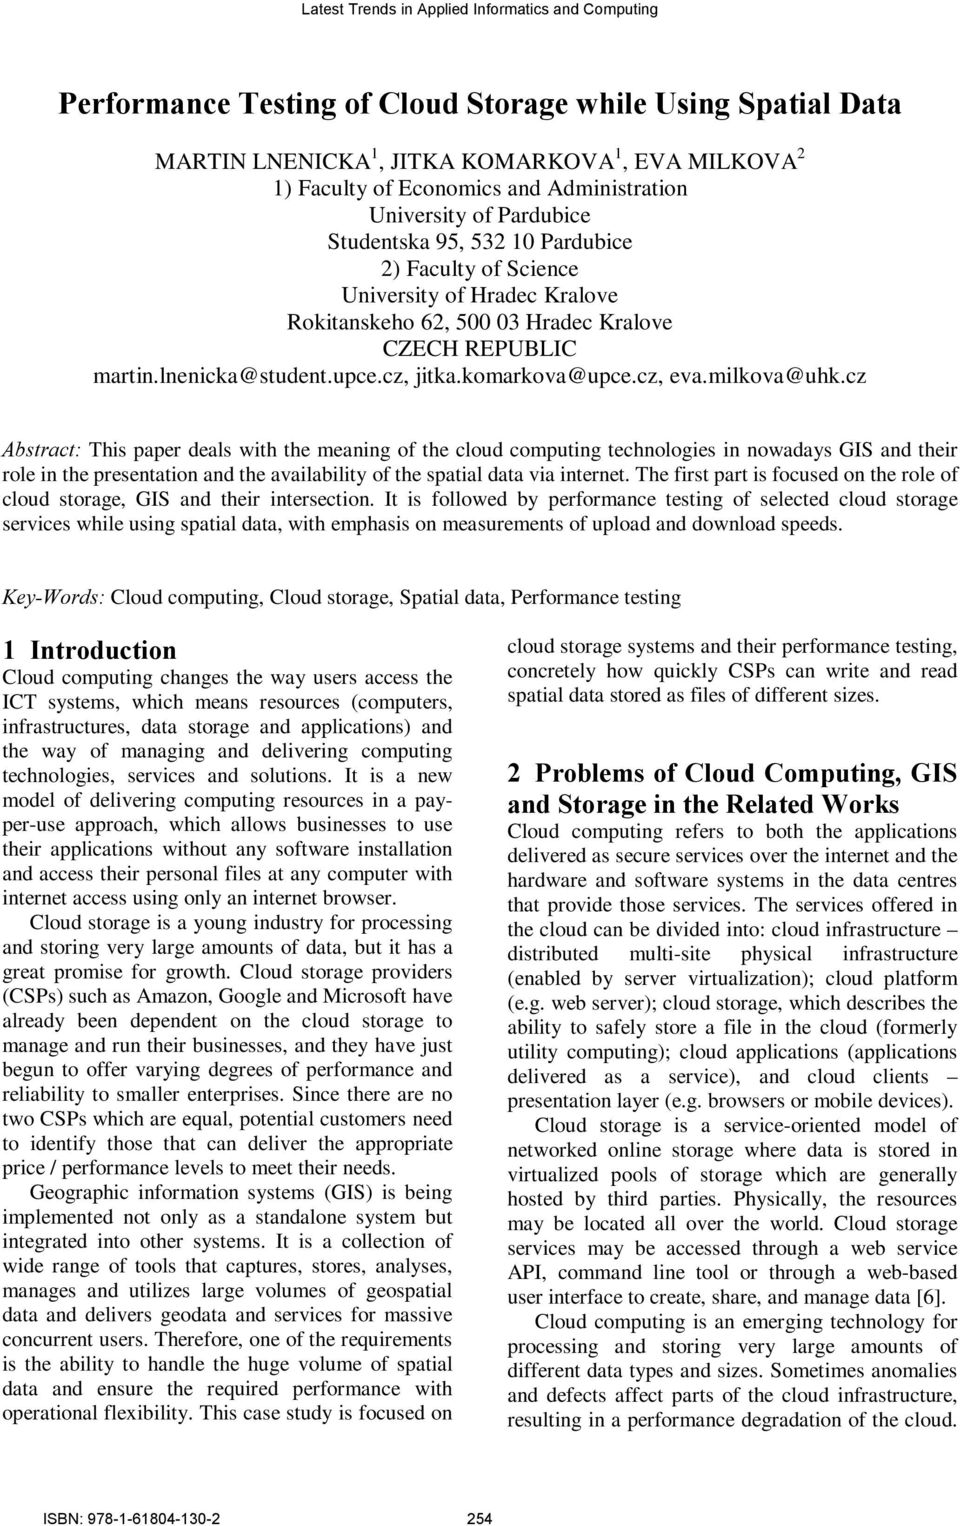 cz Abstract: This paper deals with the meaning of the computing technologies in nowadays GIS and their role in the presentation and the availability of the spatial data via internet.